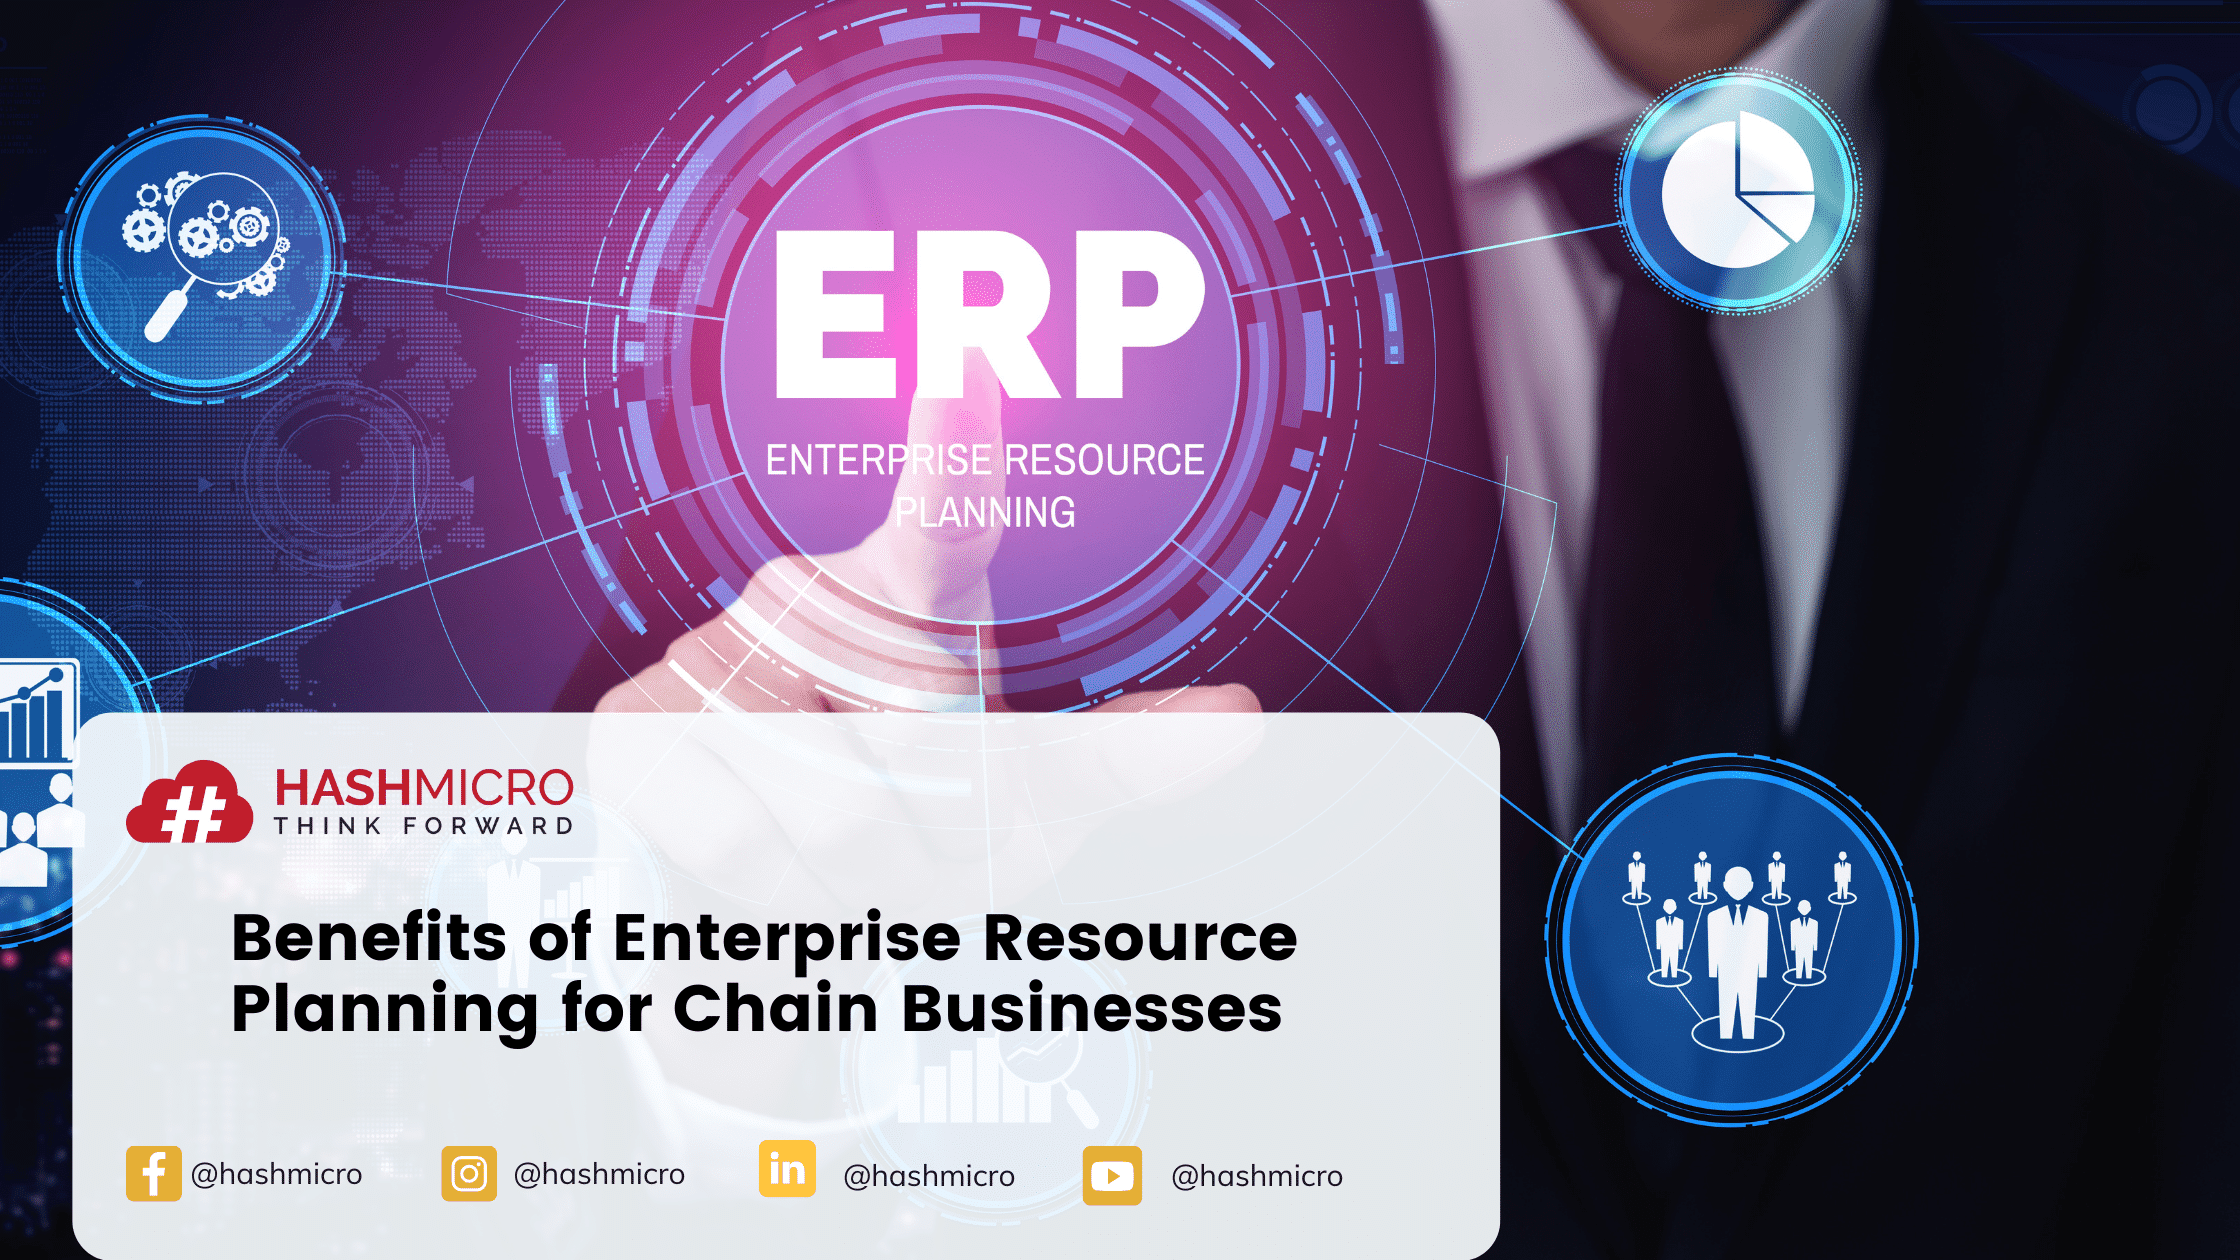 Benefits Enterprise Resource Planning for Chain Businesses